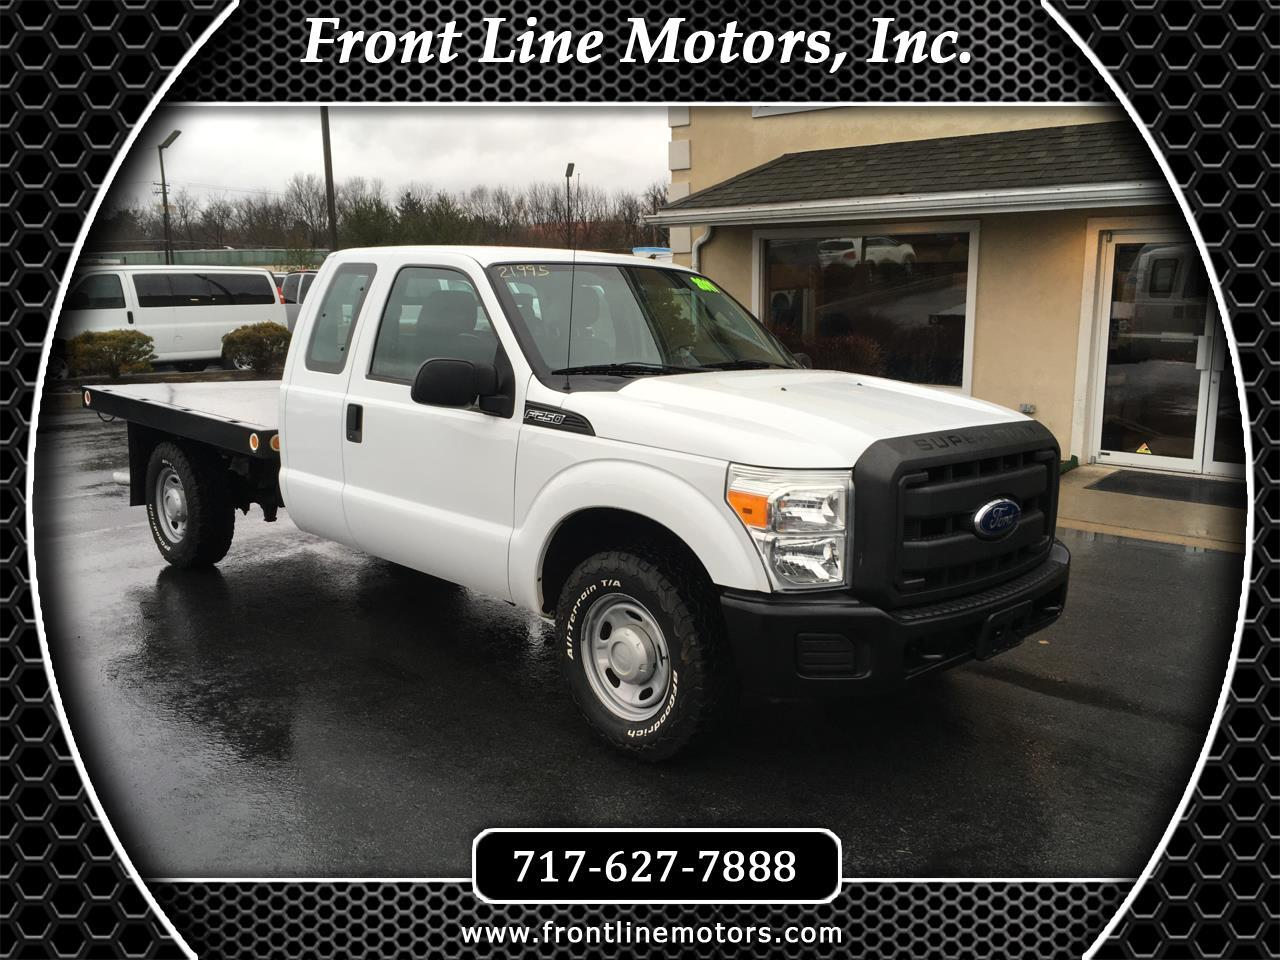 2011 Ford Super Duty F-250 SRW 2WD SuperCab 142